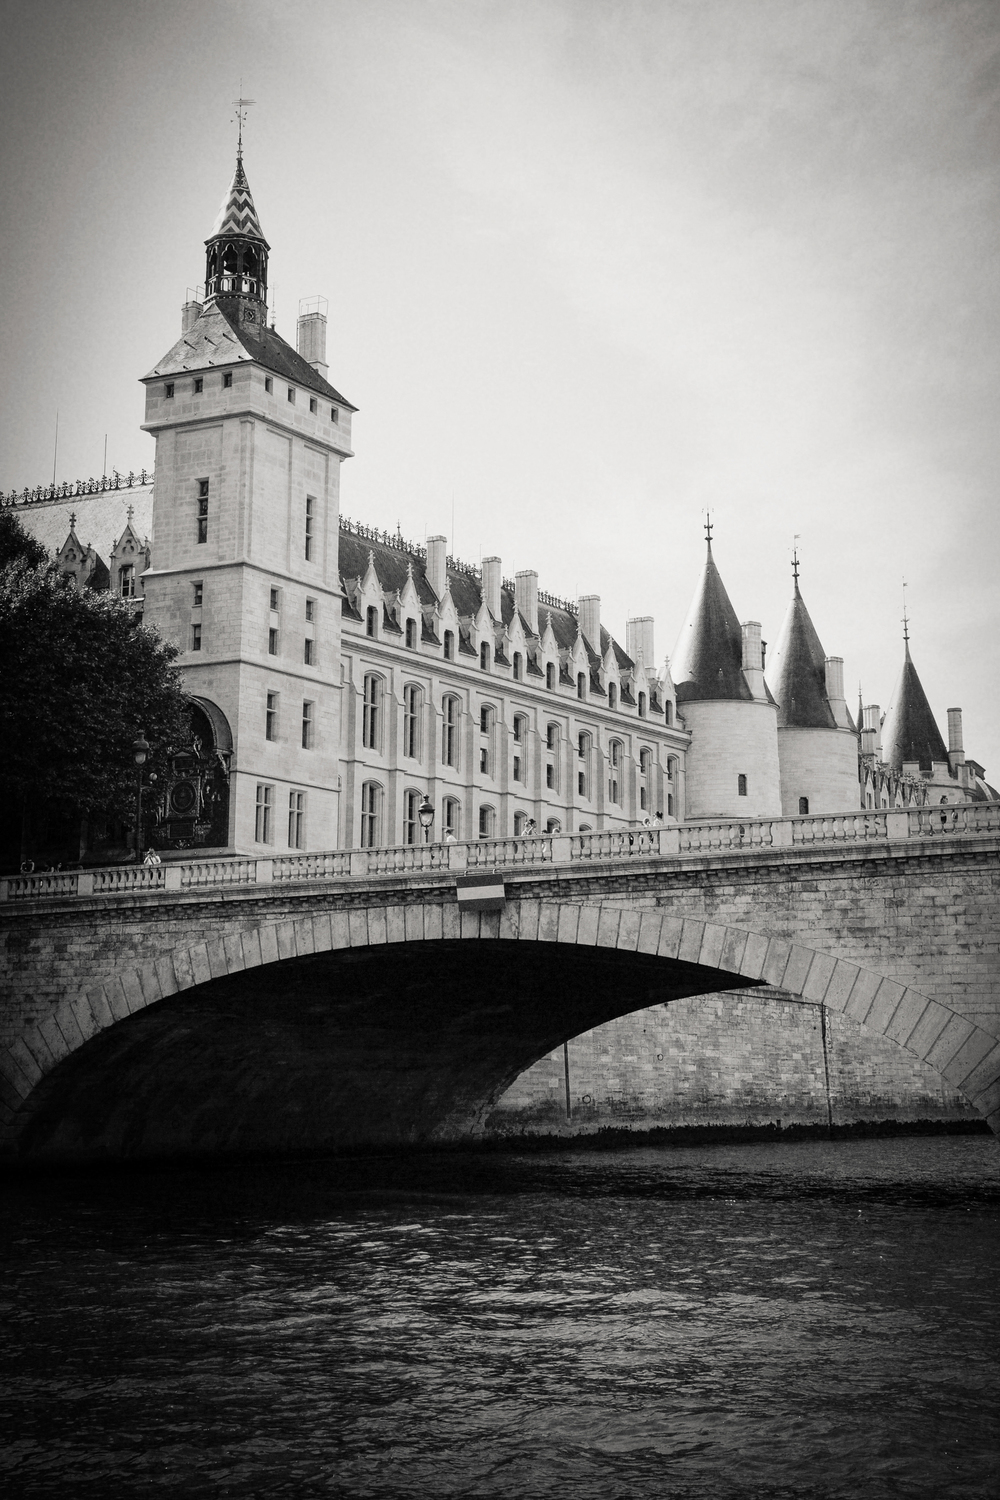 The Conciergerie, River Seine, Paris 2014.